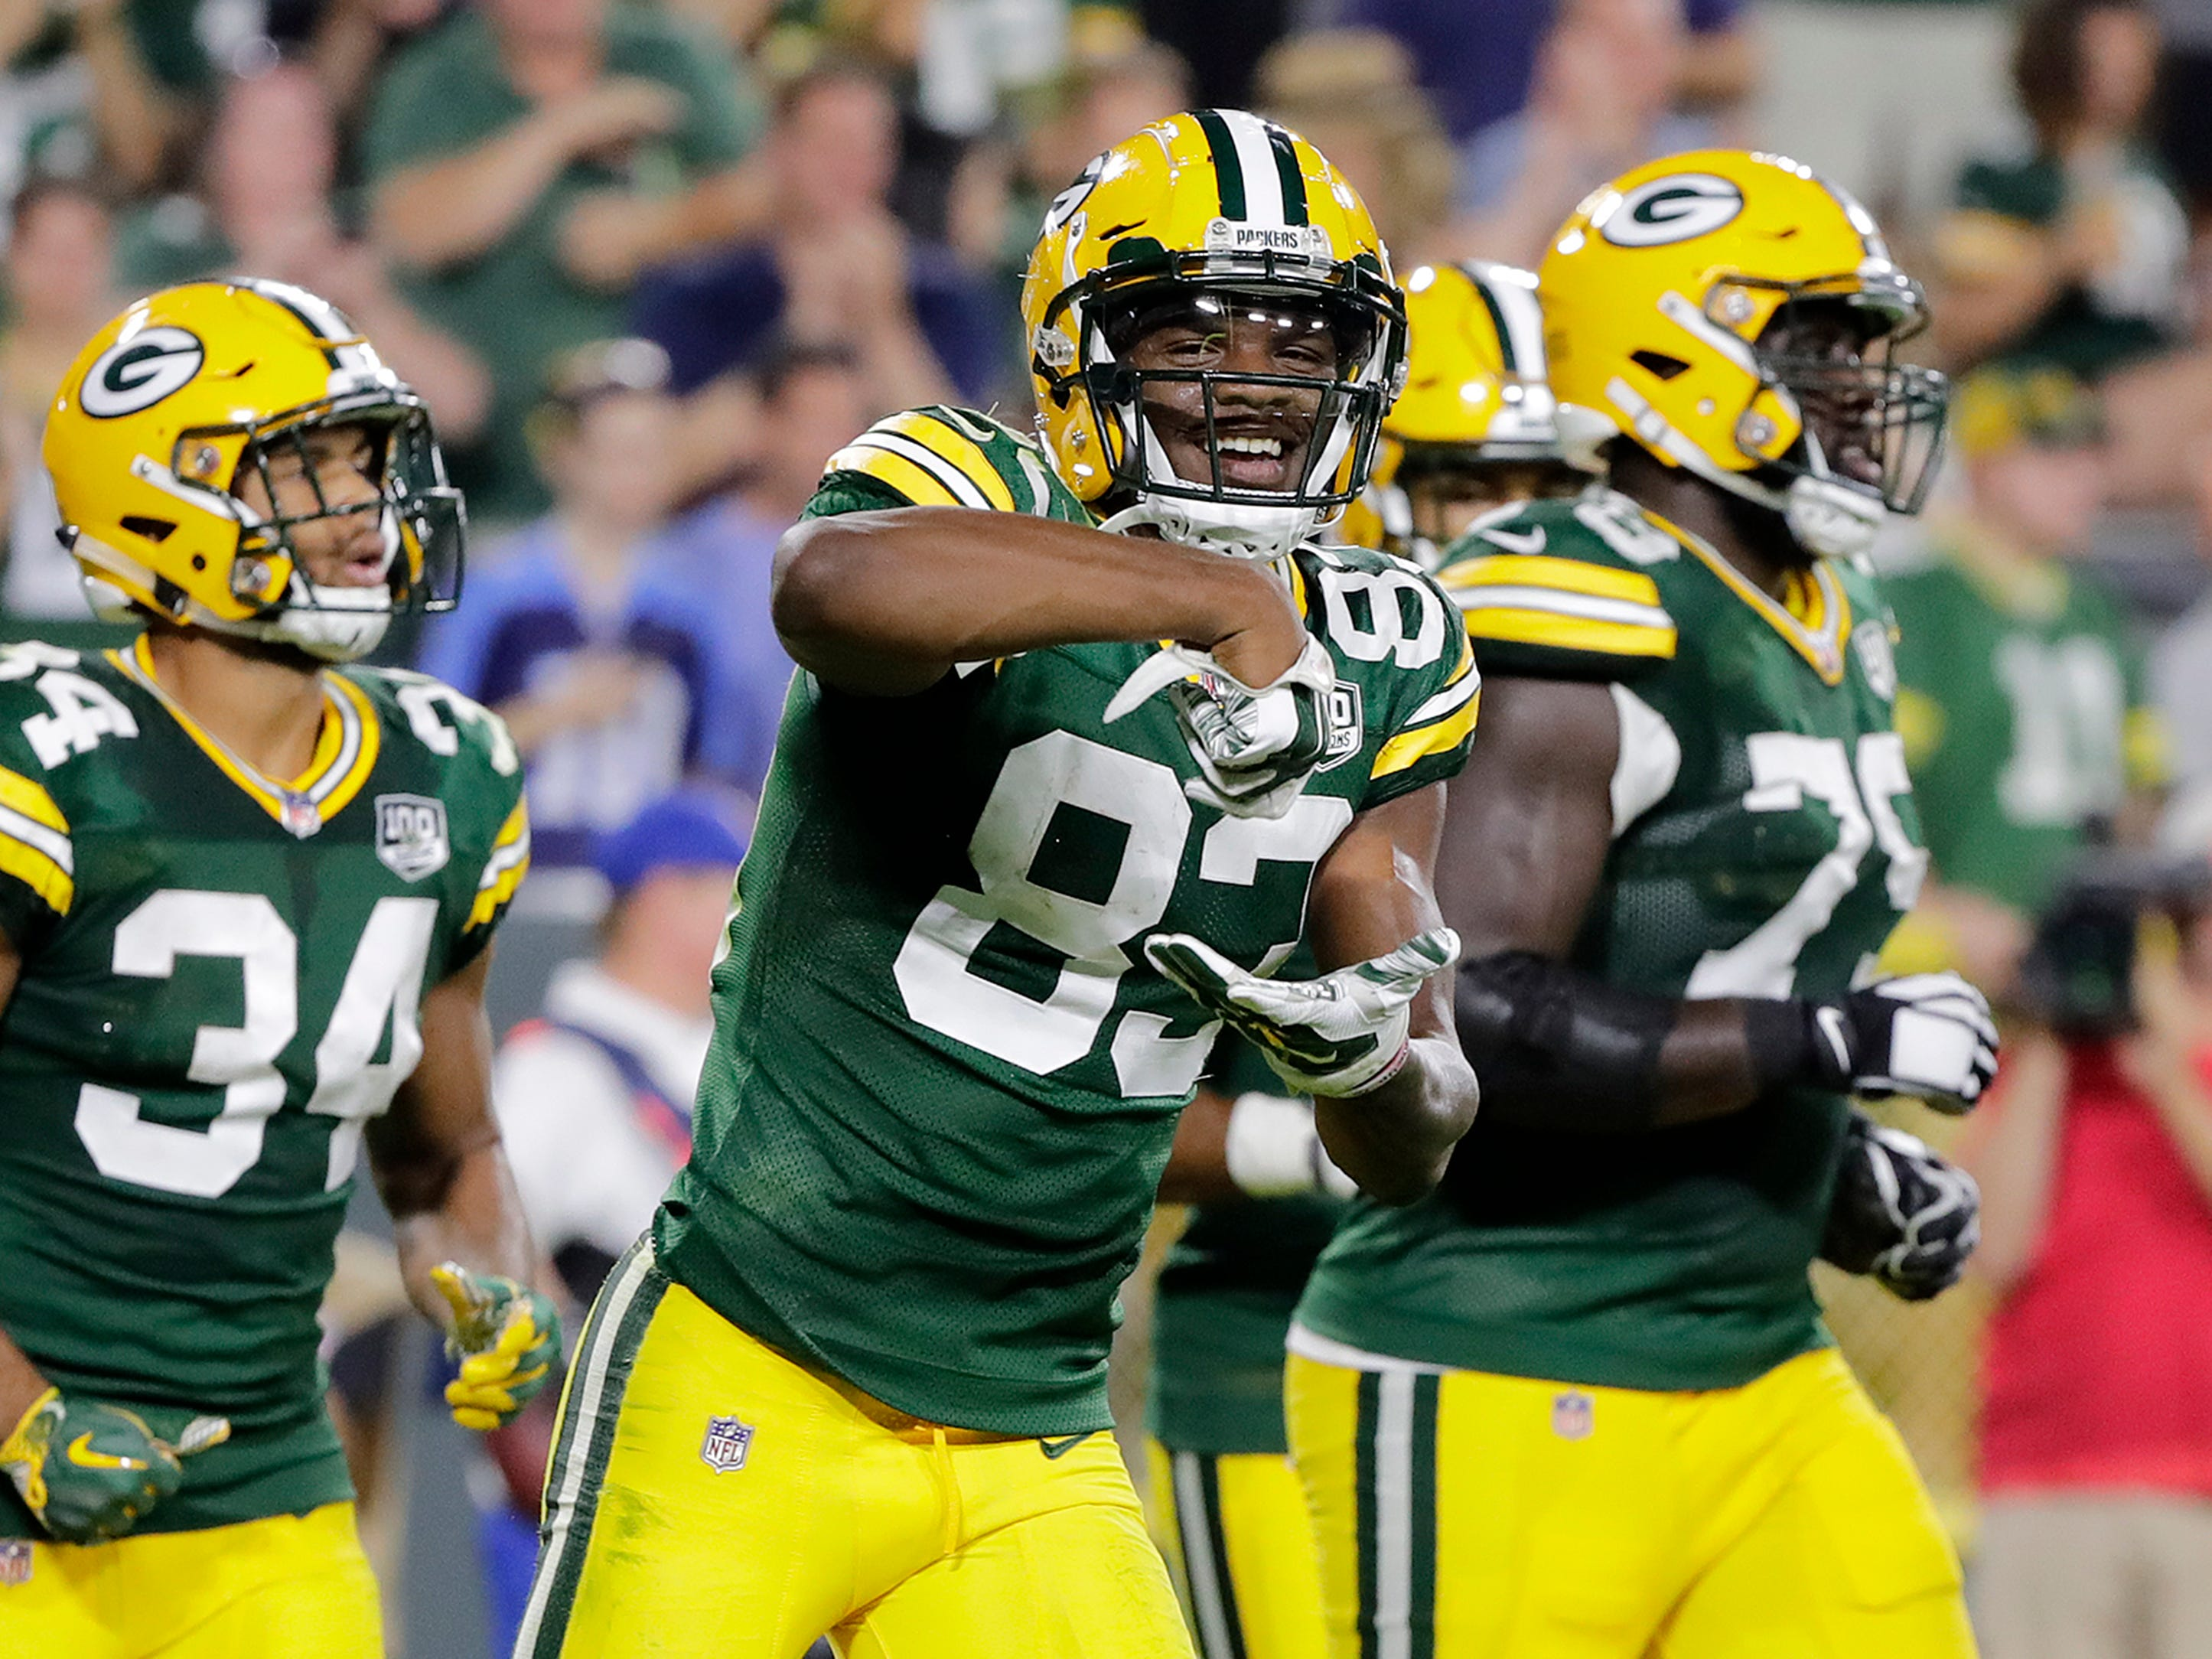 Green Bay Packers wide receiver Marquez Valdes-Scantling (83) celebrates after scoring a touchdown against the Tennessee Titans in the fourth quarter of an NFL preseason game at Lambeau Field on Thursday, August 9, 2018 in Green Bay, Wis.